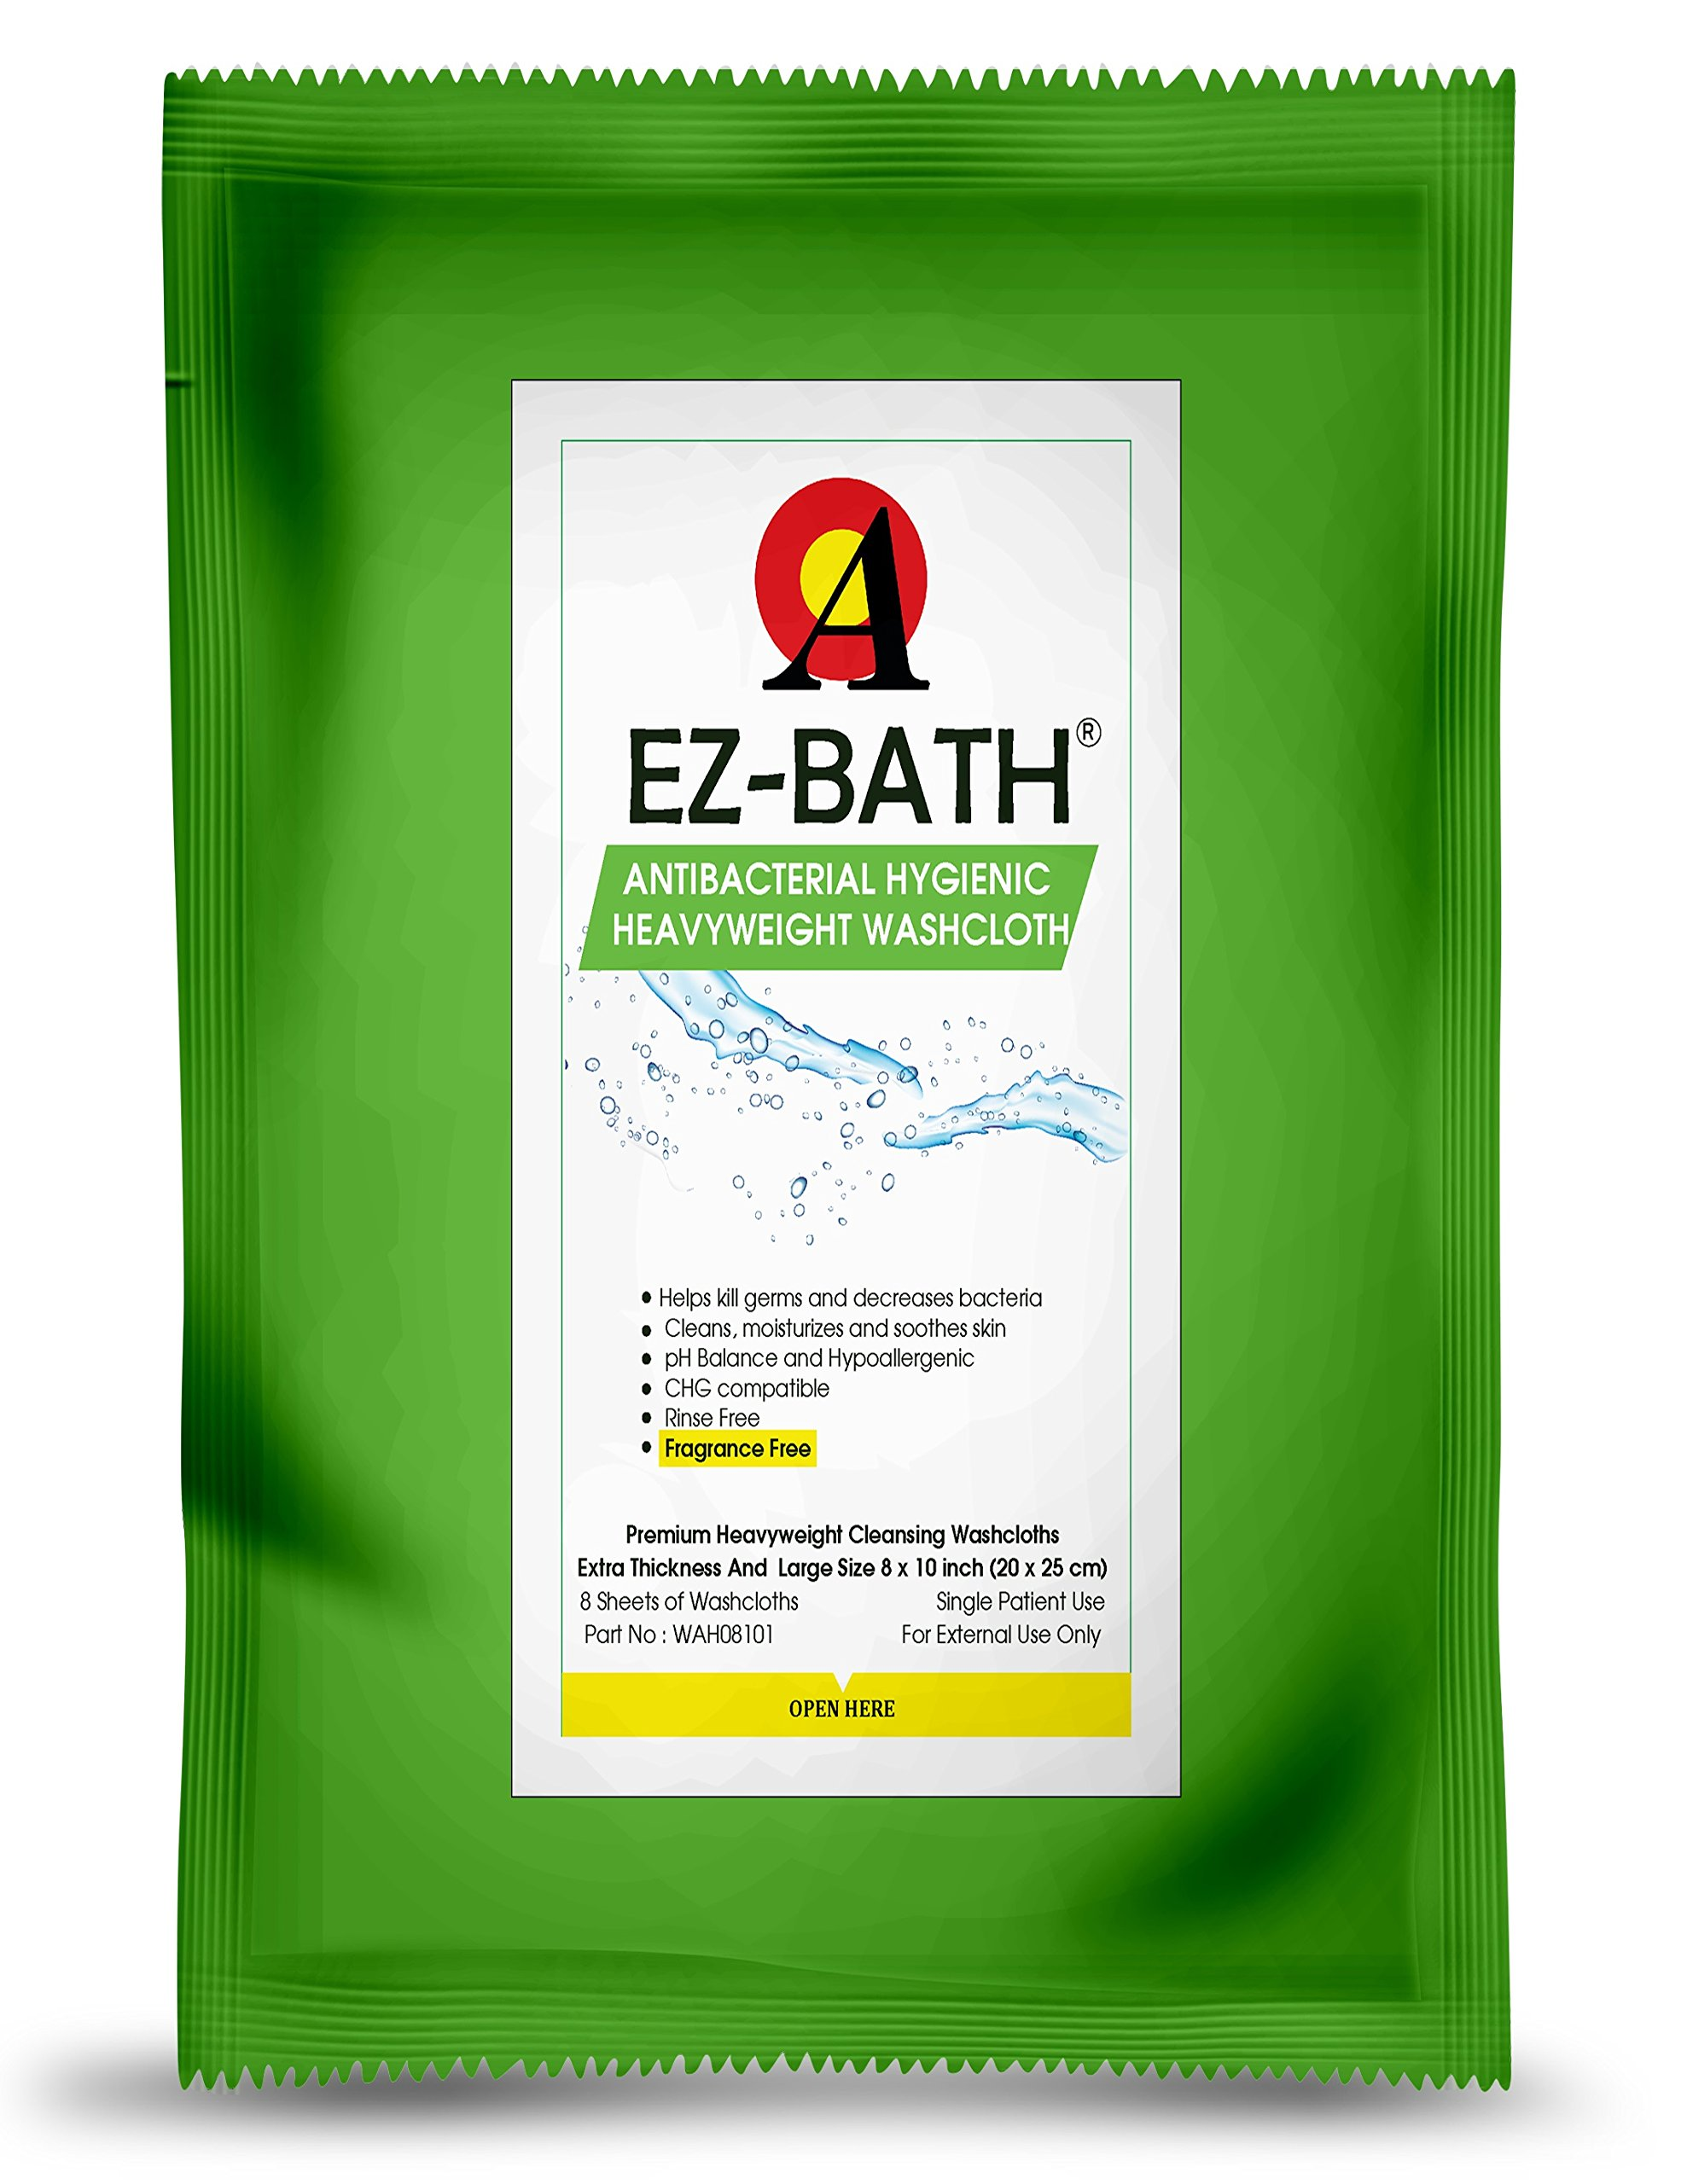 Antibacterial & Heavyweight Cleansing Cloths, Unscented (8 Sheets-14 Packs) by EZ-BATH